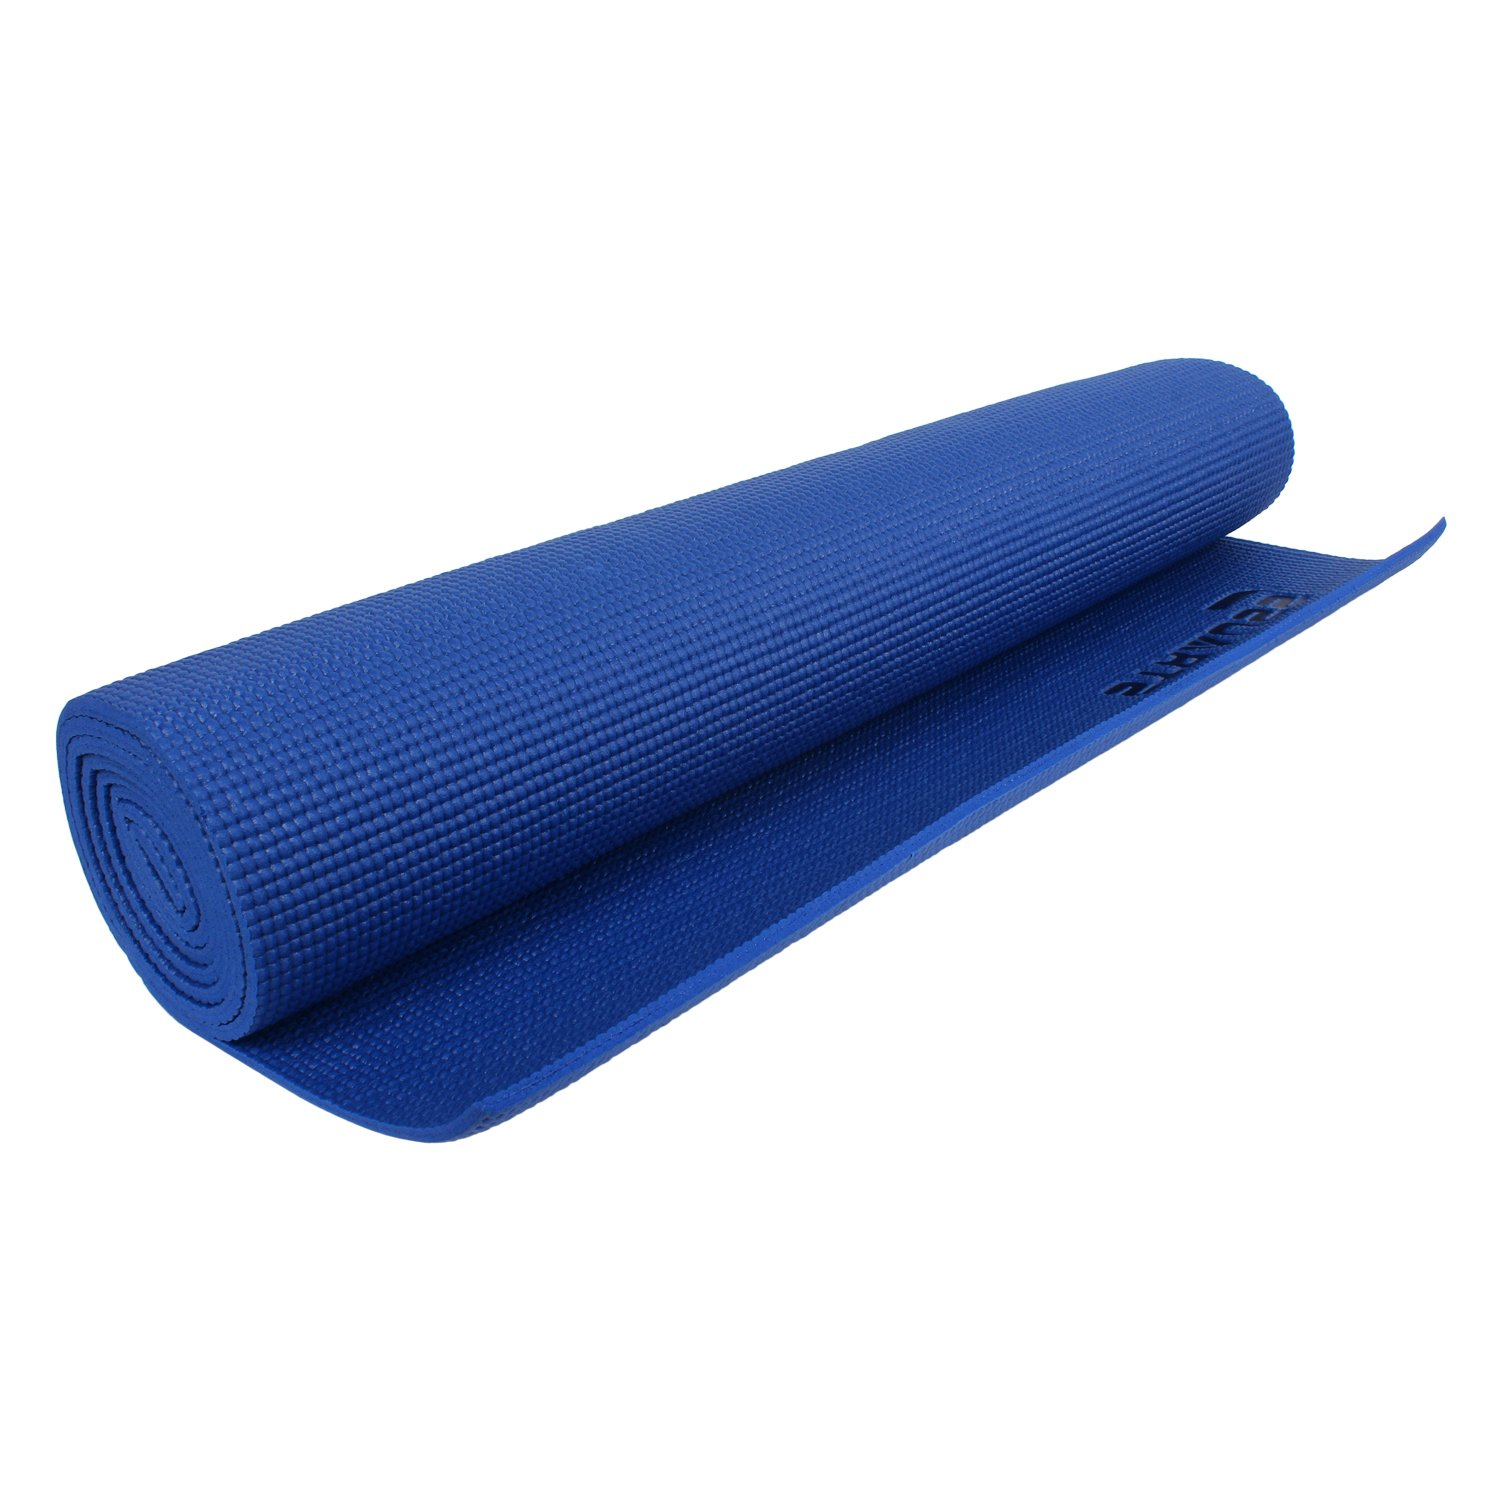 Upto 60% Off On Sports Goods By Amazon | Strauss Yoga Mat @ Rs.525